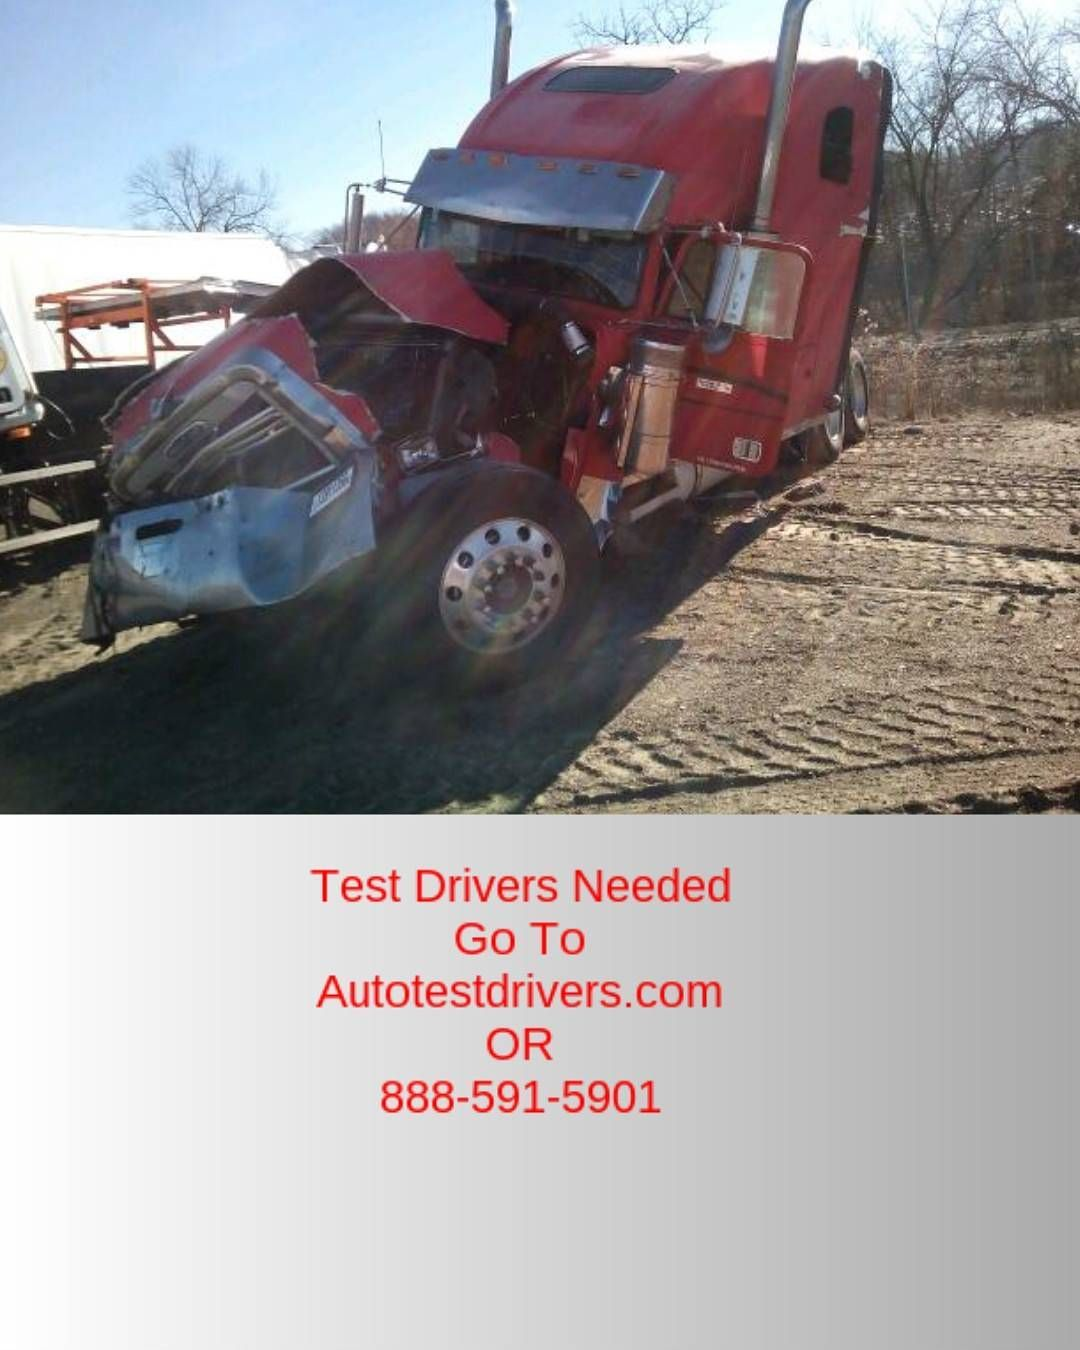 Drivingjobs247 Com On Instagram Test Driving Jobs In Dalton Ga